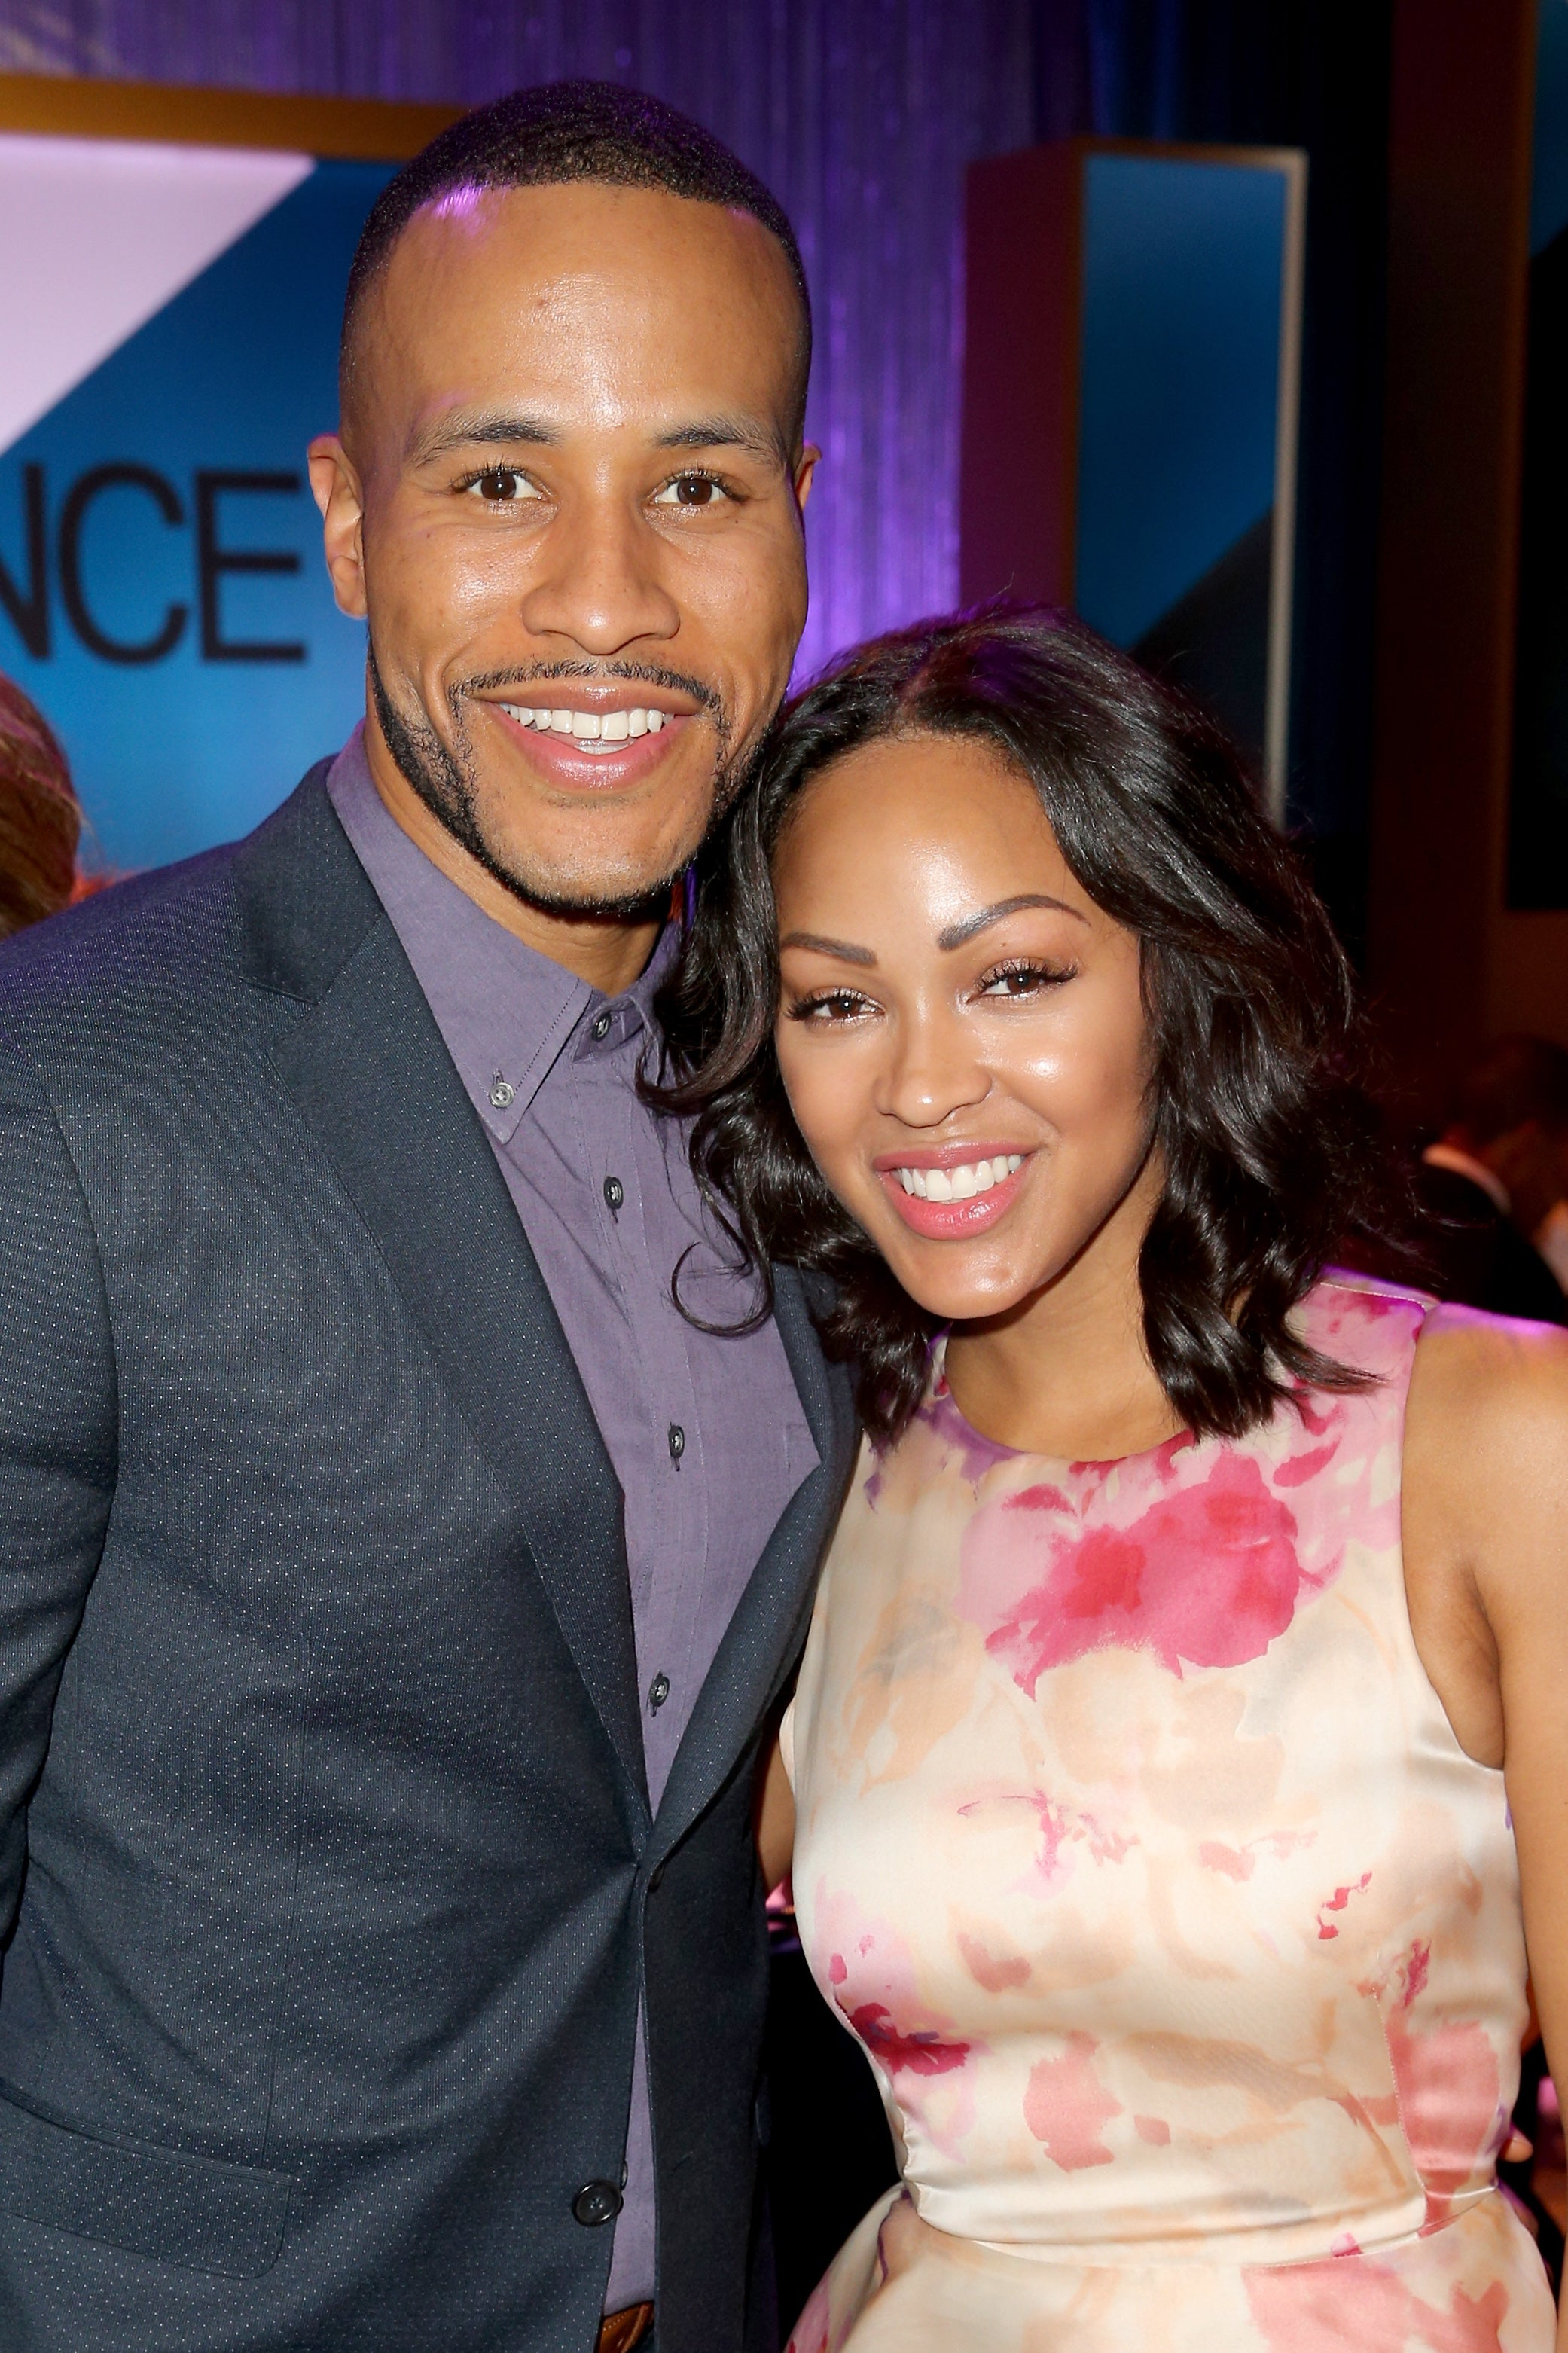 Meagan Good's Husband DeVon Franklin Takes Their Love To New Heights to Celebrate Her Birthdays